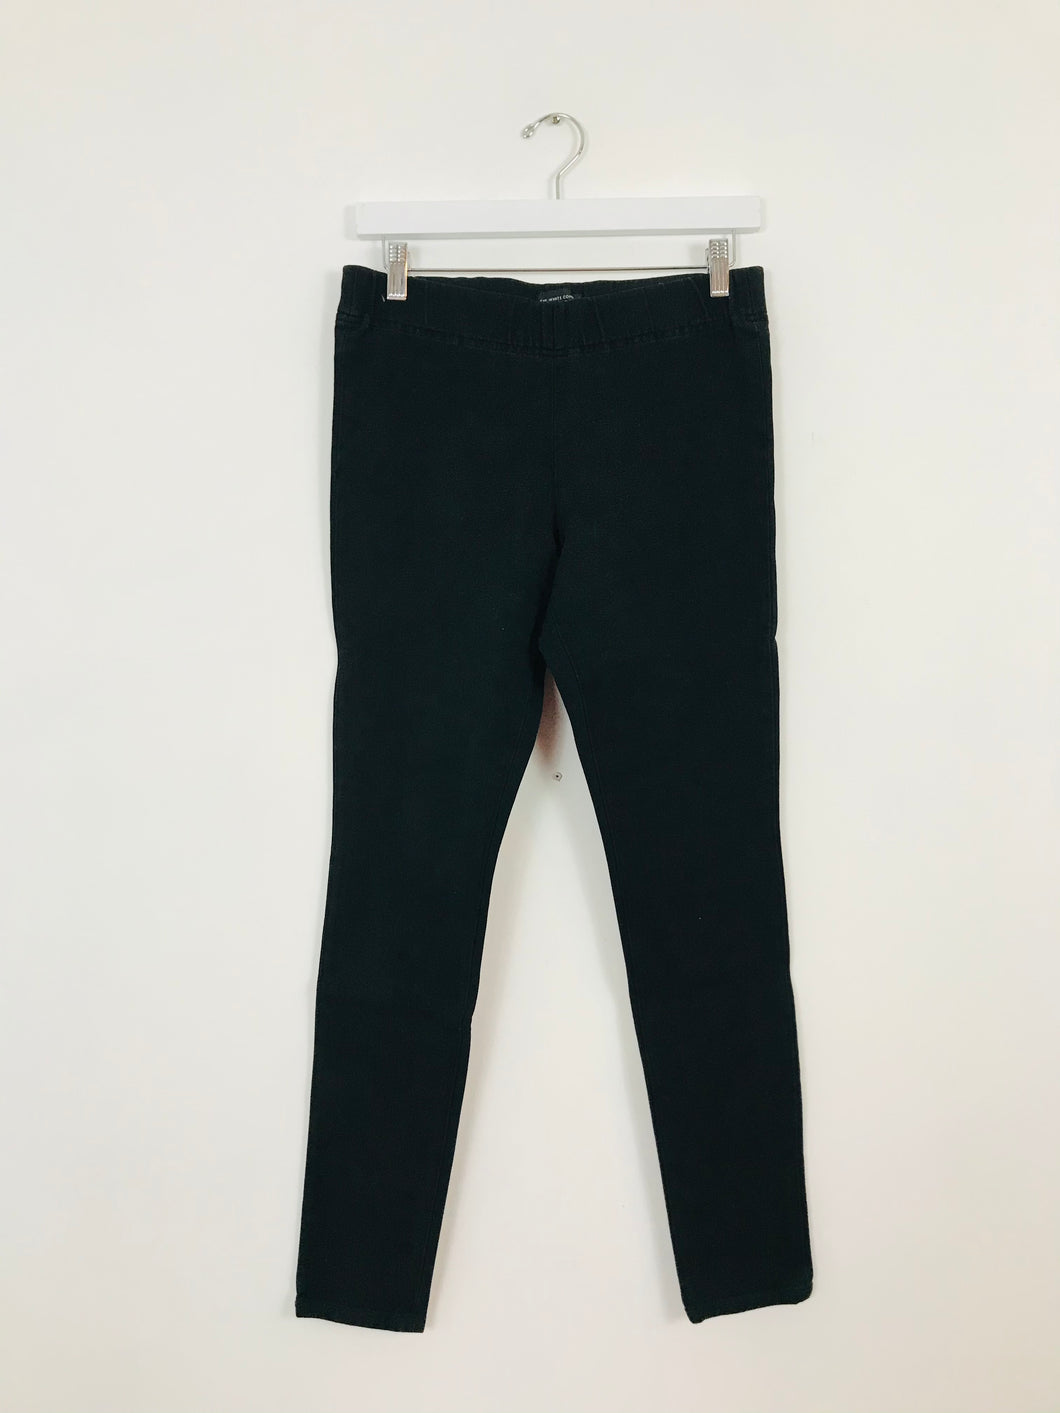 The White Company Women's Jeggings Jeans Leggings | UK10-12 | Black